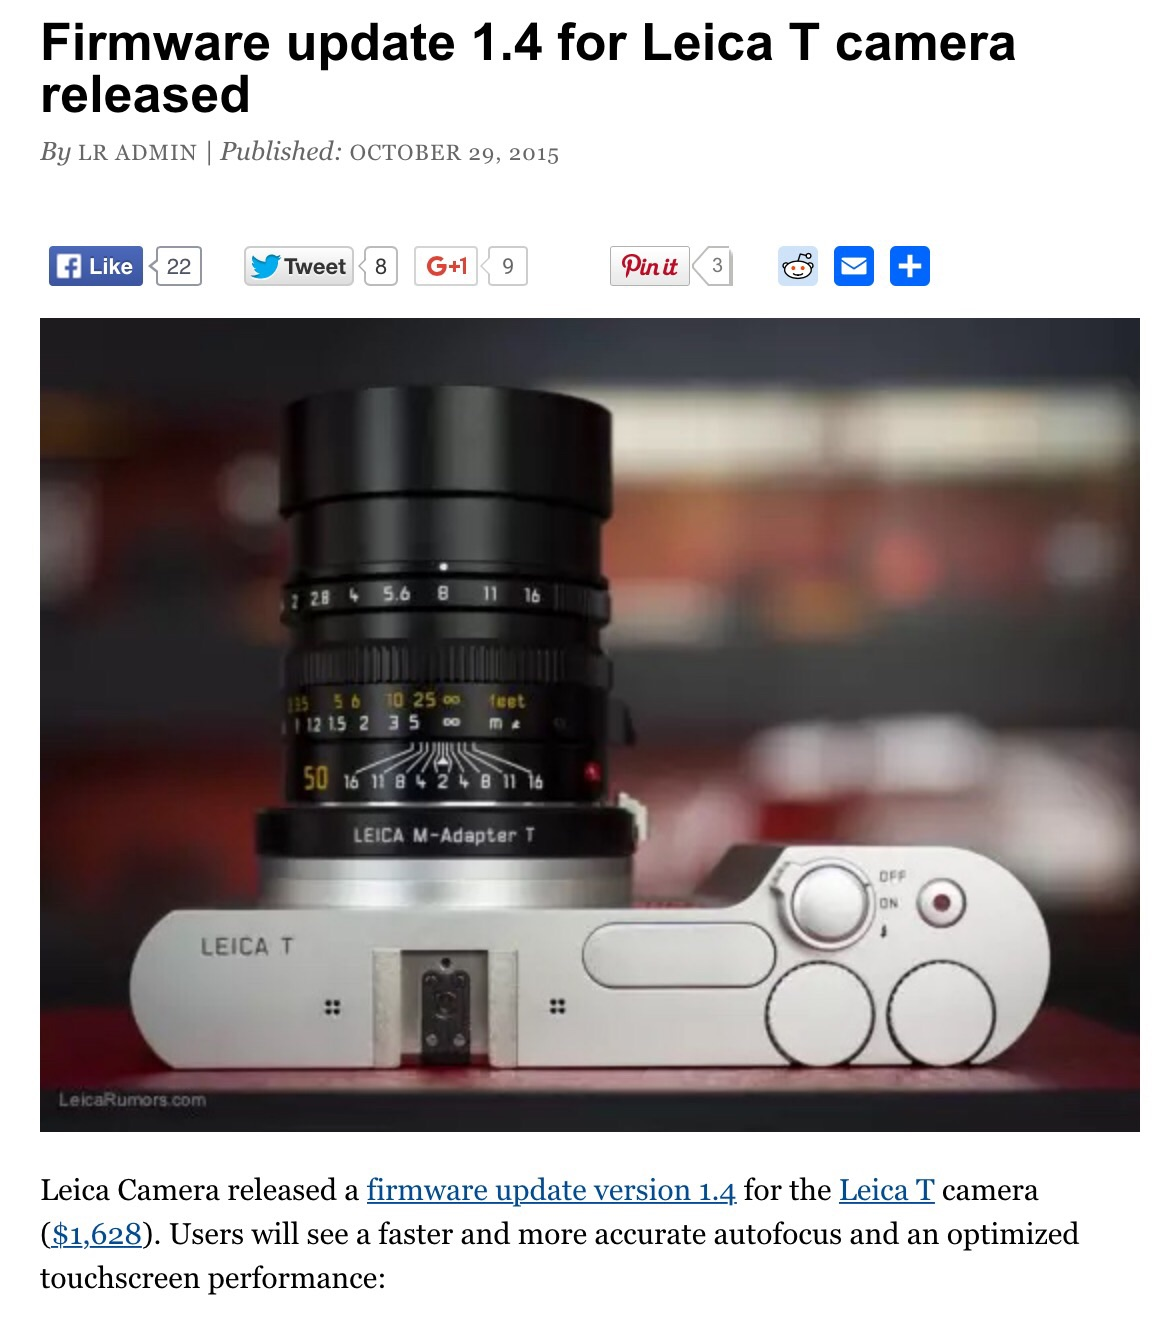 http://leicarumors.com/2015/10/29/firmware-update-1-4-for-leica-t-camera-released.aspx/